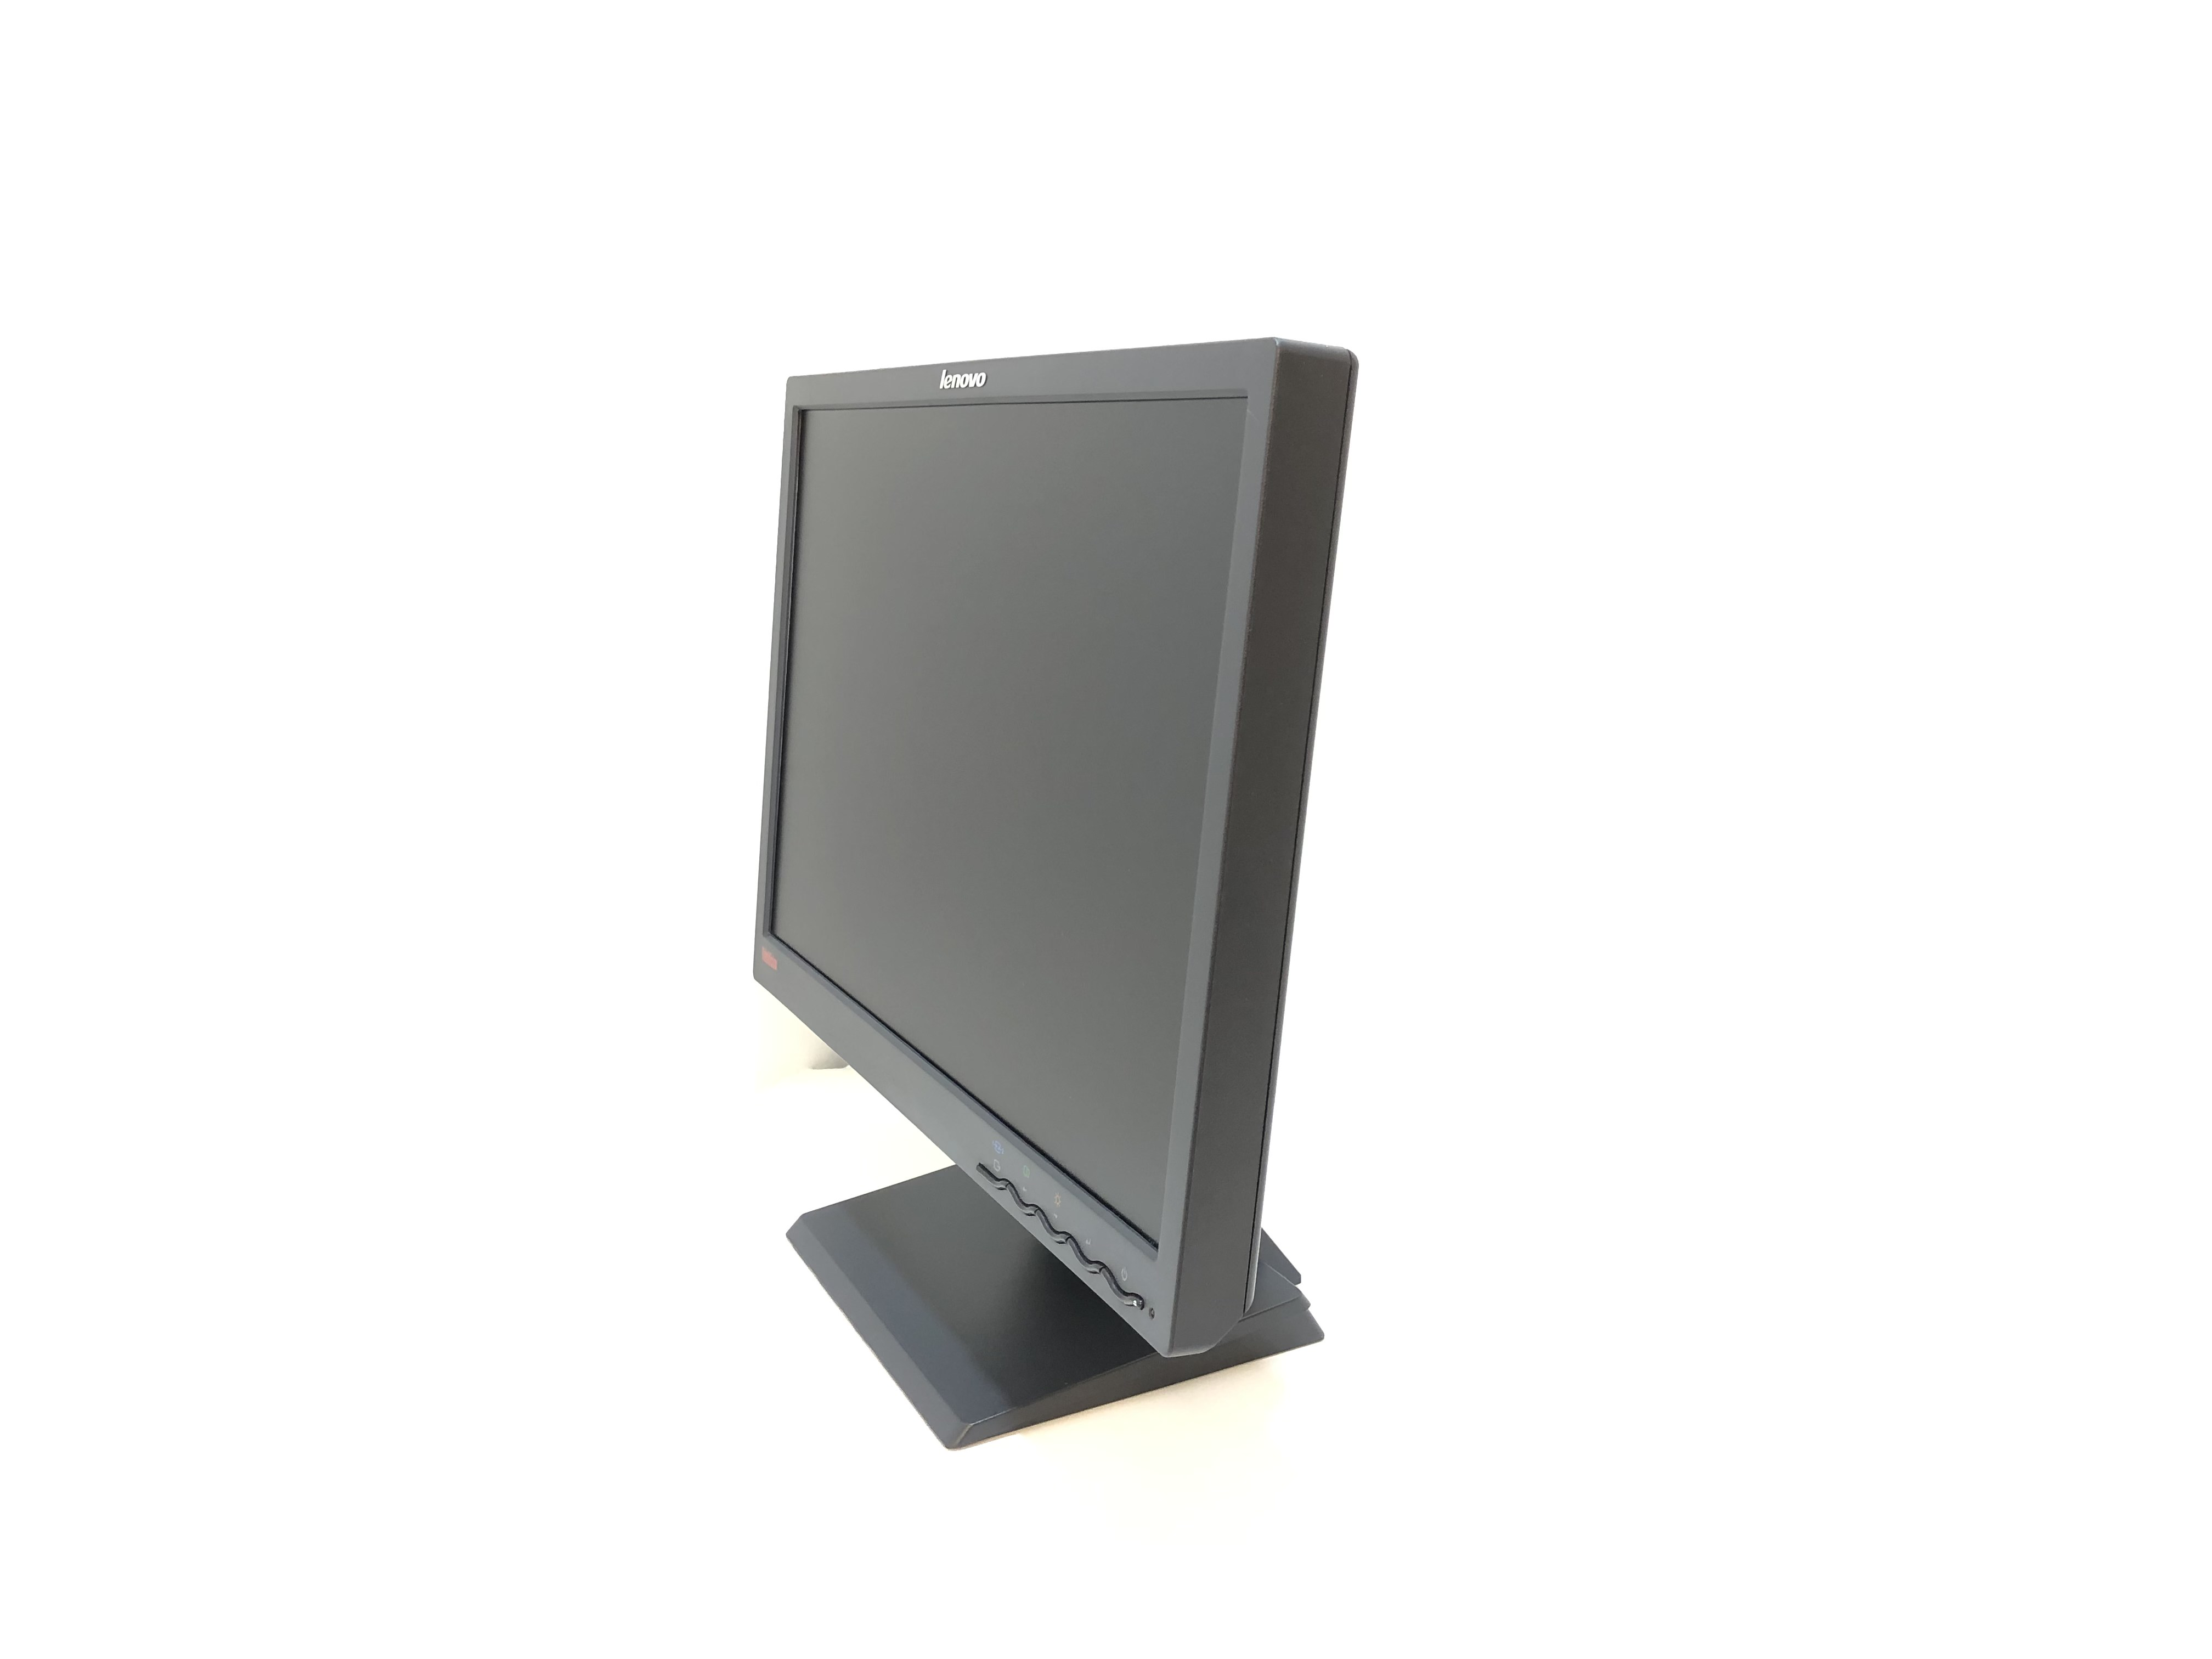 Lenovo ThinkVision L197wA No 3